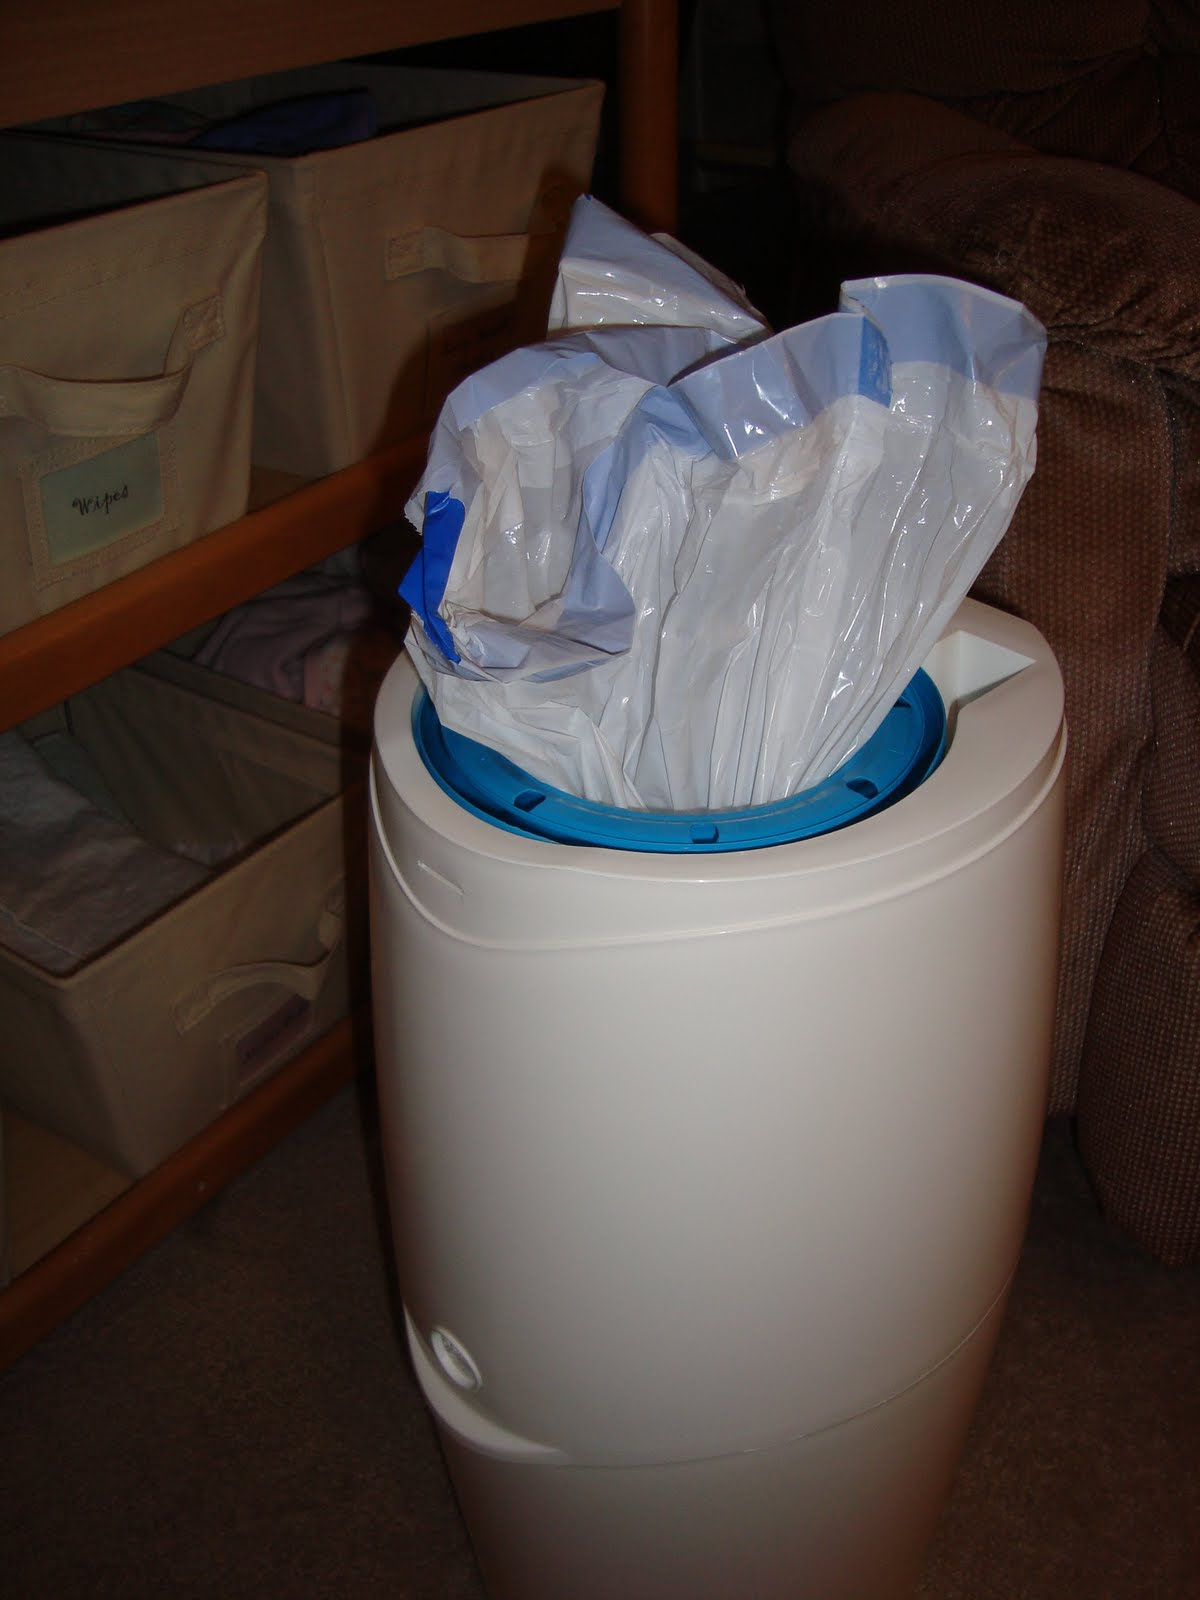 Frugal Made Easy: What? Diaper Genie Refills Cost How Much?